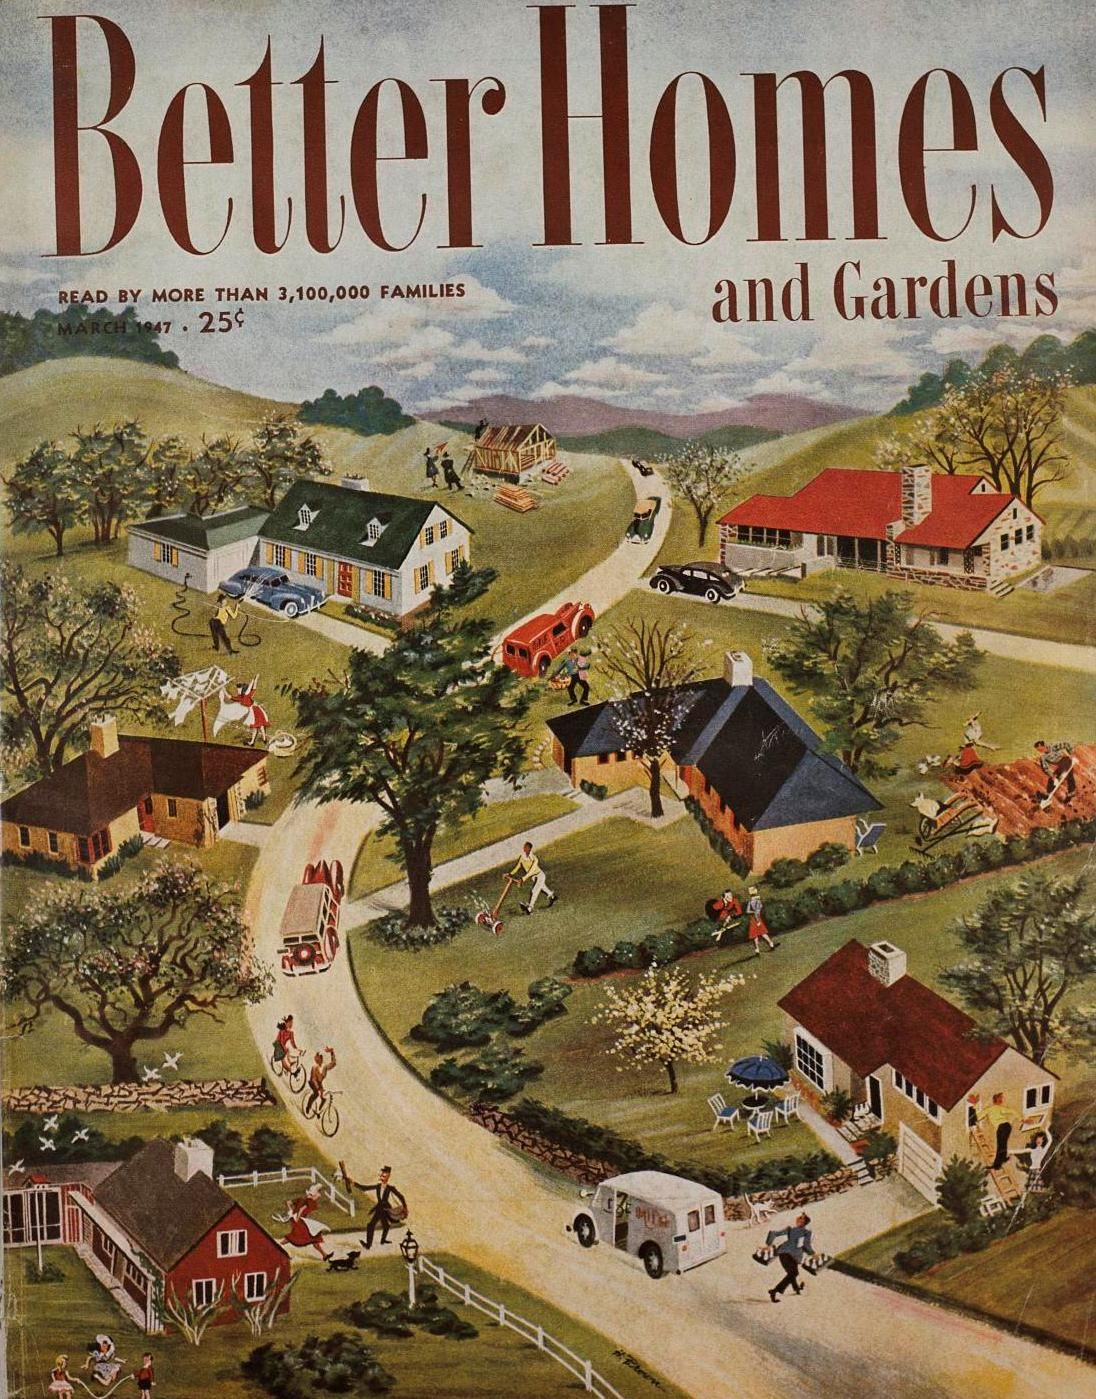 130b44af0ca8e88aec73e4773dfd00aa - Old Better Homes And Gardens Magazines